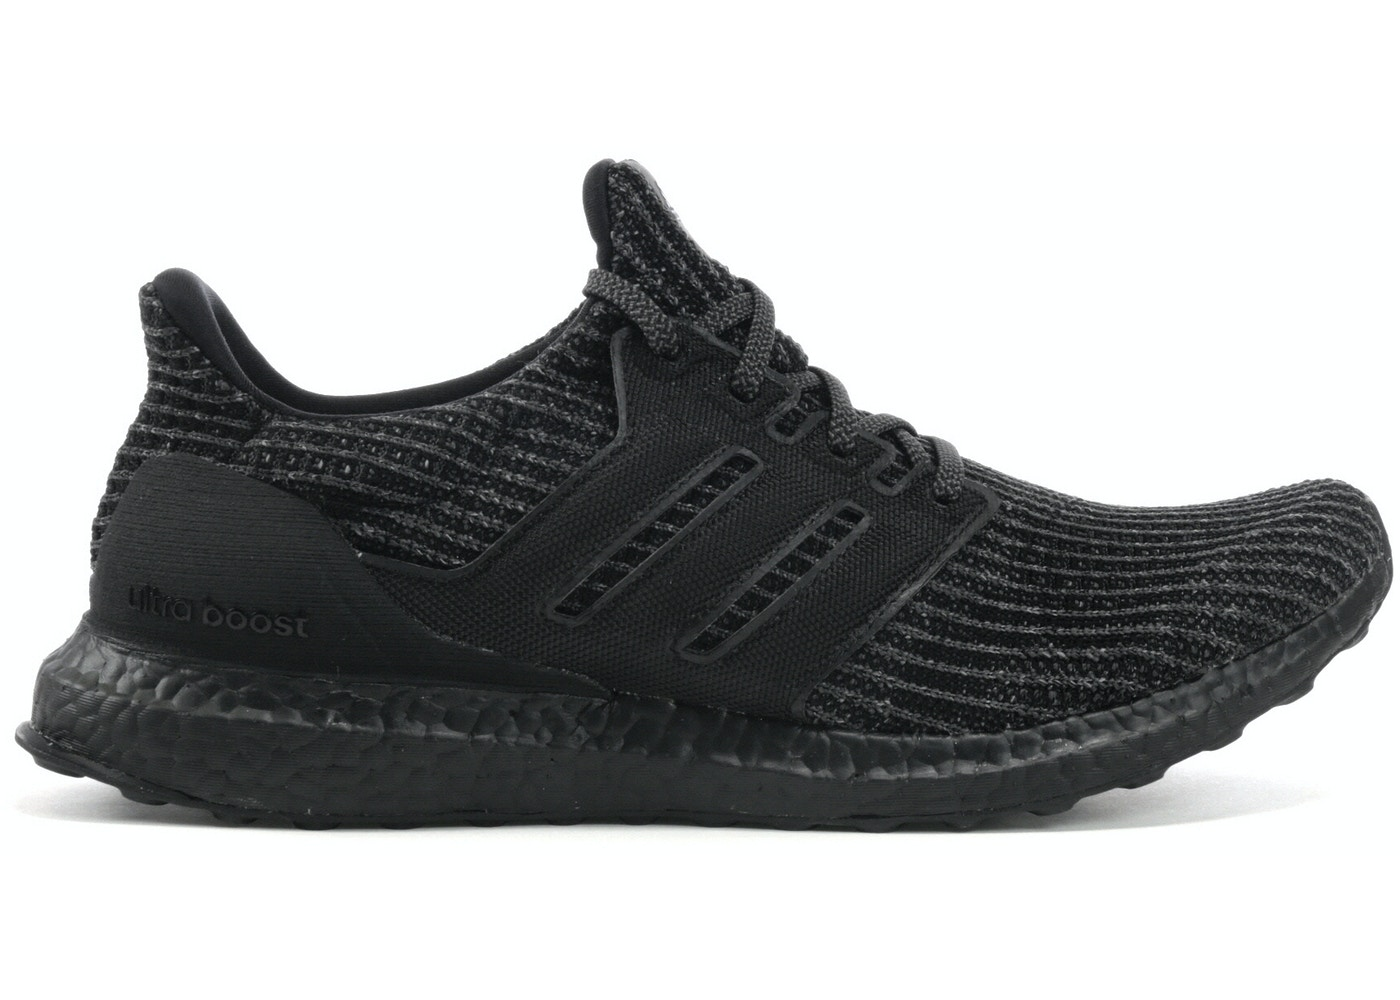 47ad500b572 adidas Ultra Boost 4.0 Triple Black - BB6171